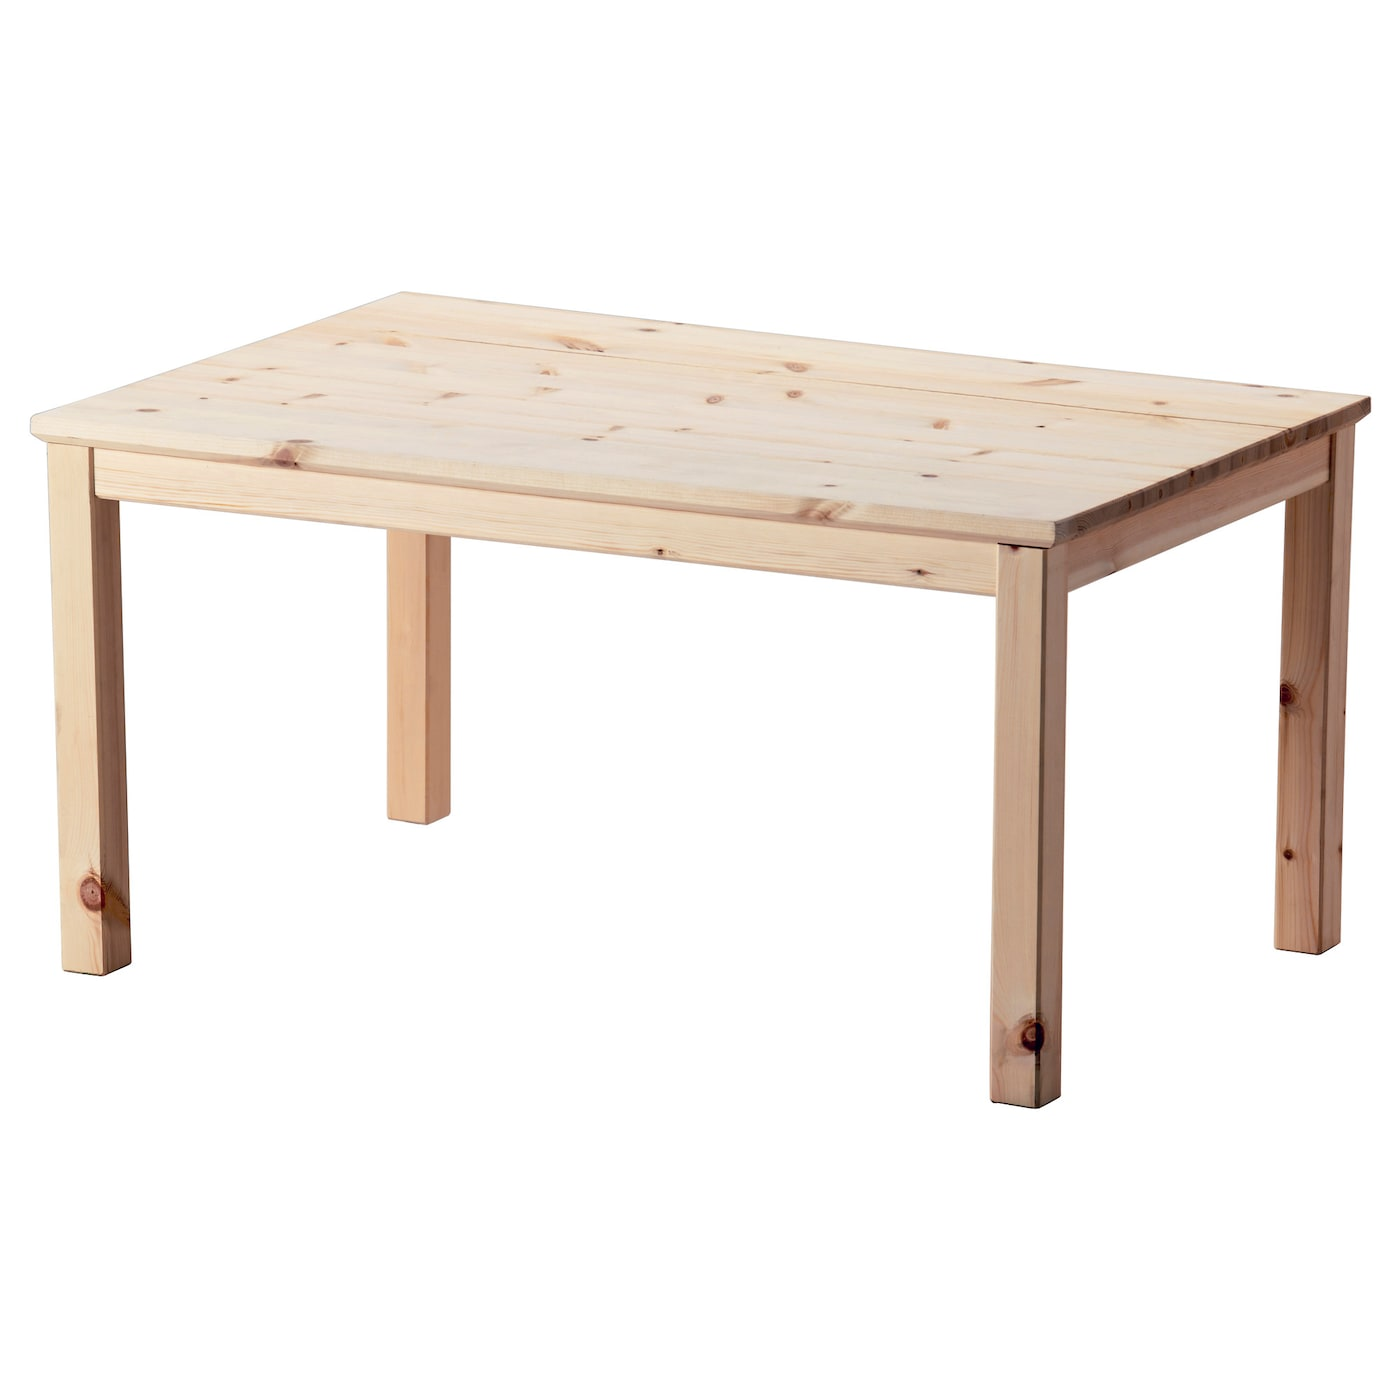 Norn s coffee table pine 89x59 cm ikea - Petite table cuisine ikea ...